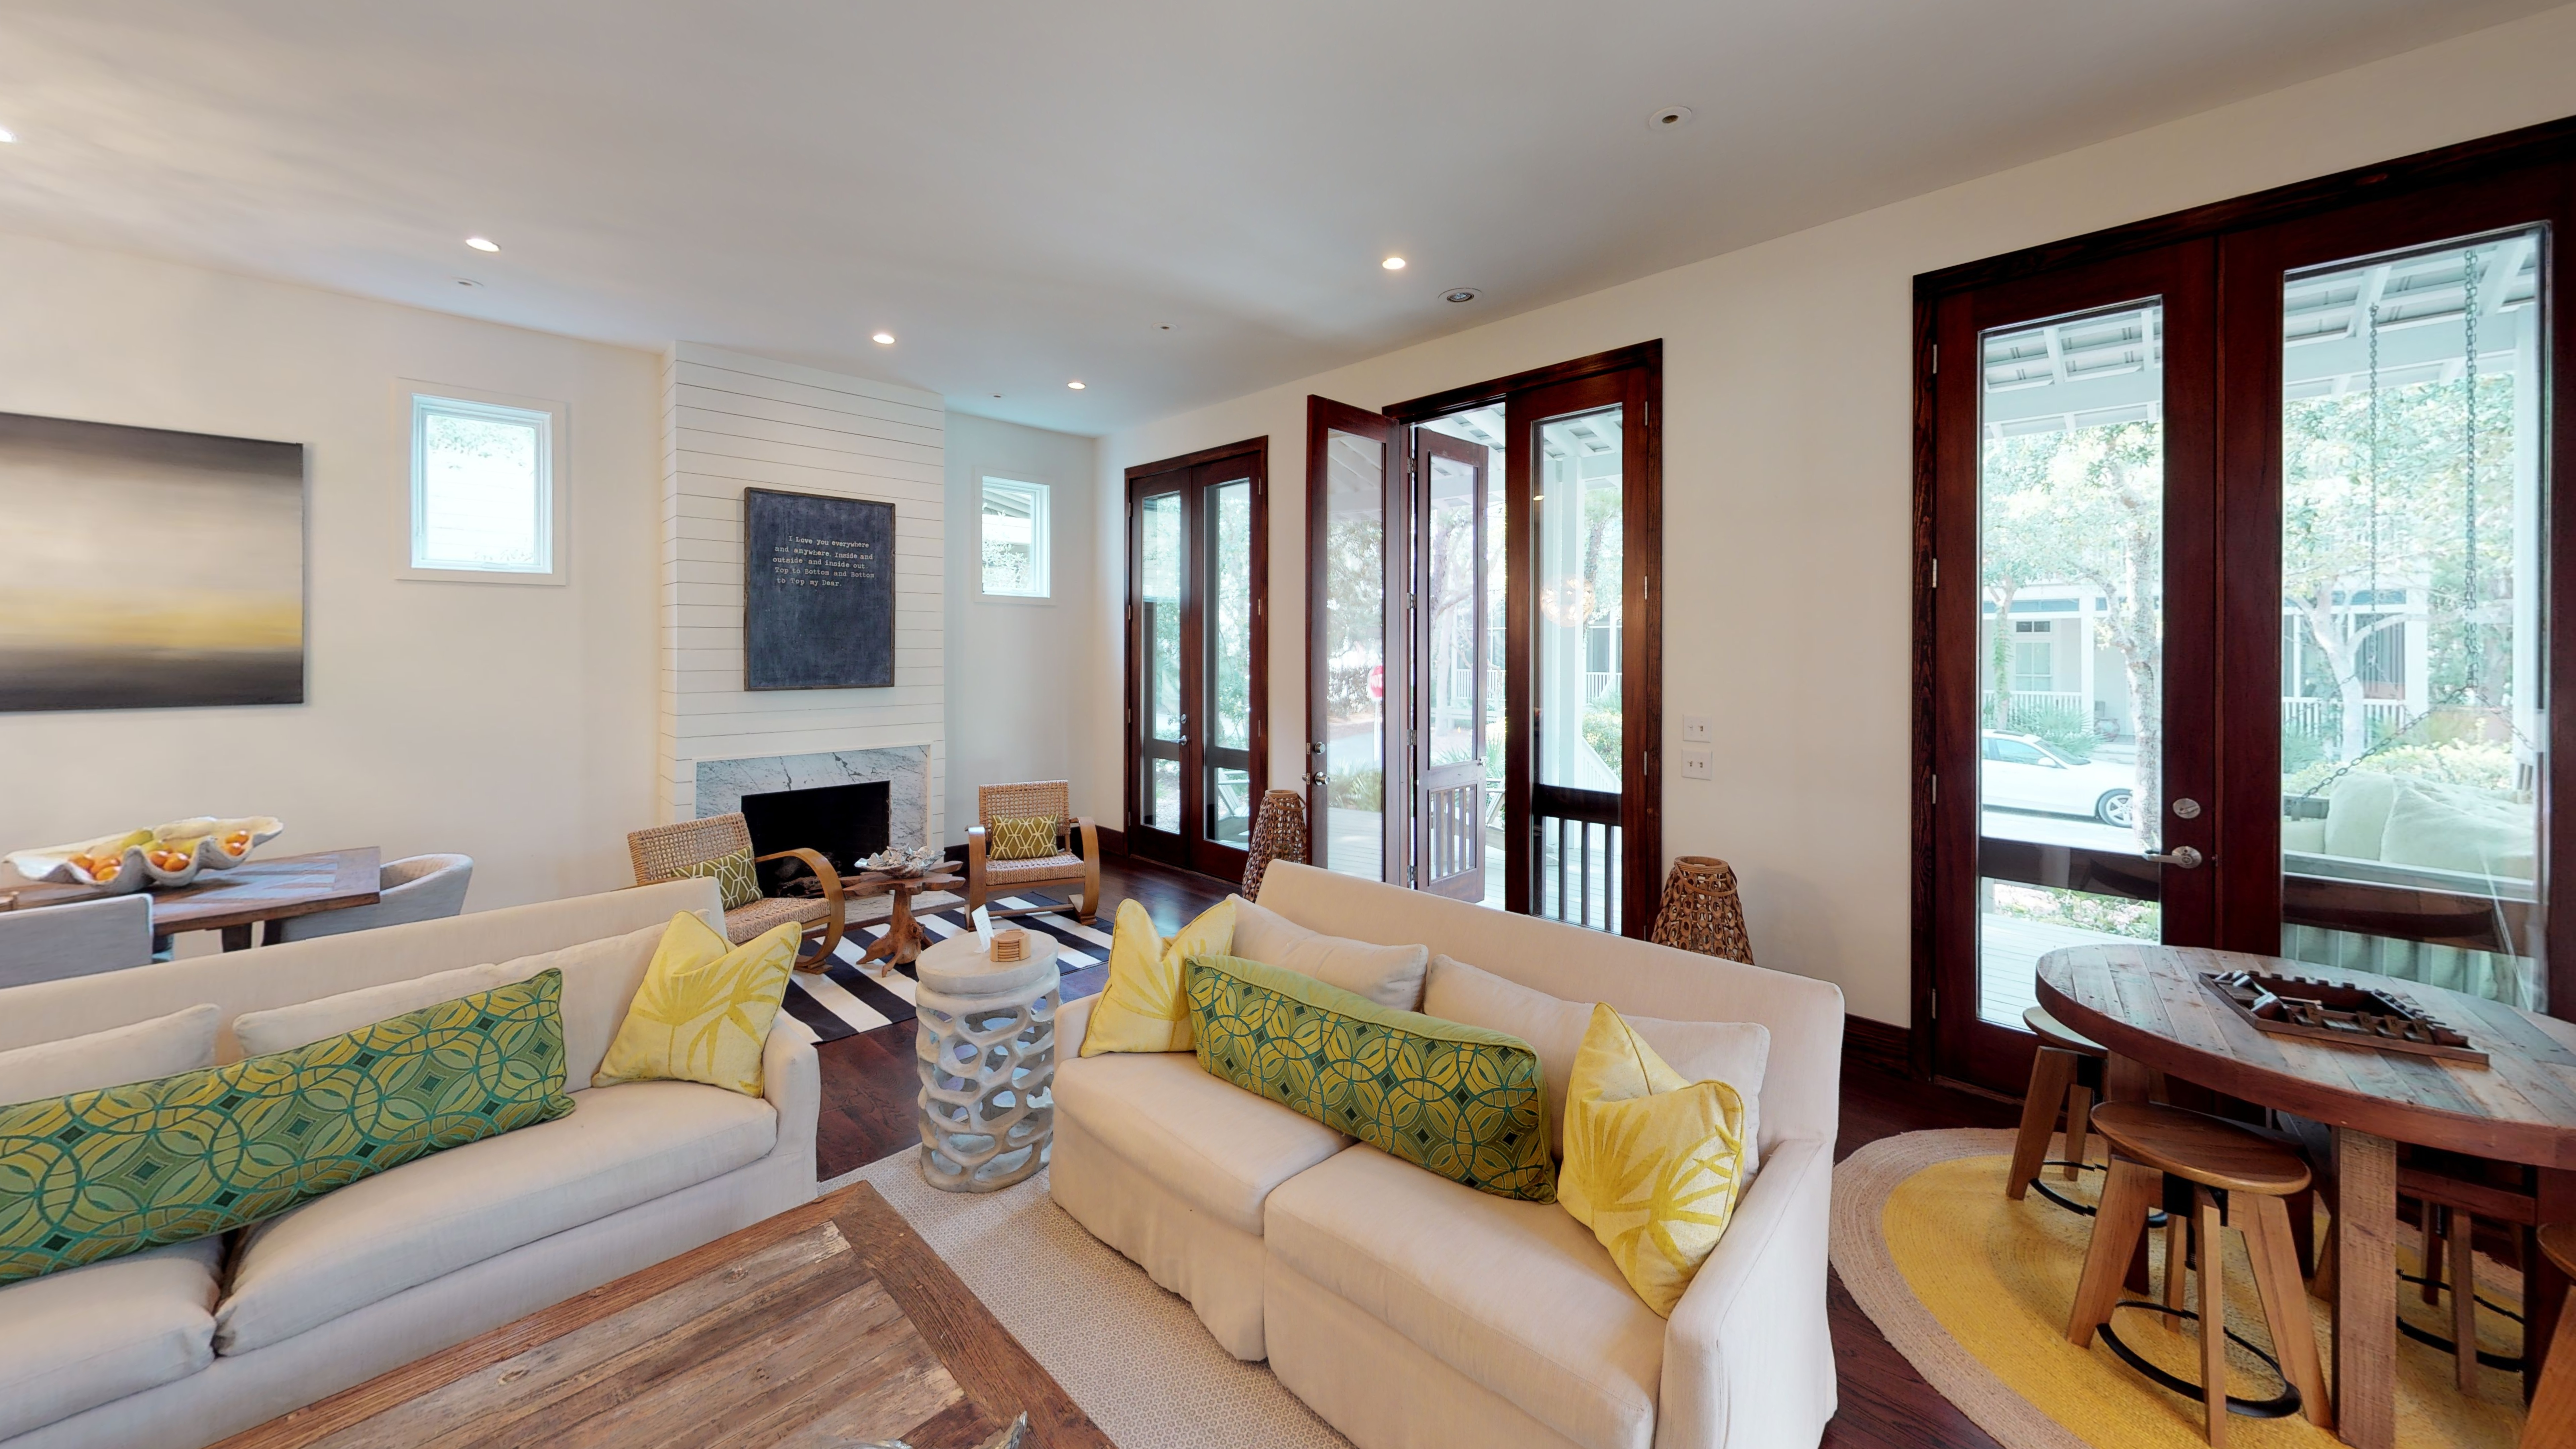 Comfortable living space with gorgeous doors leading to front porch